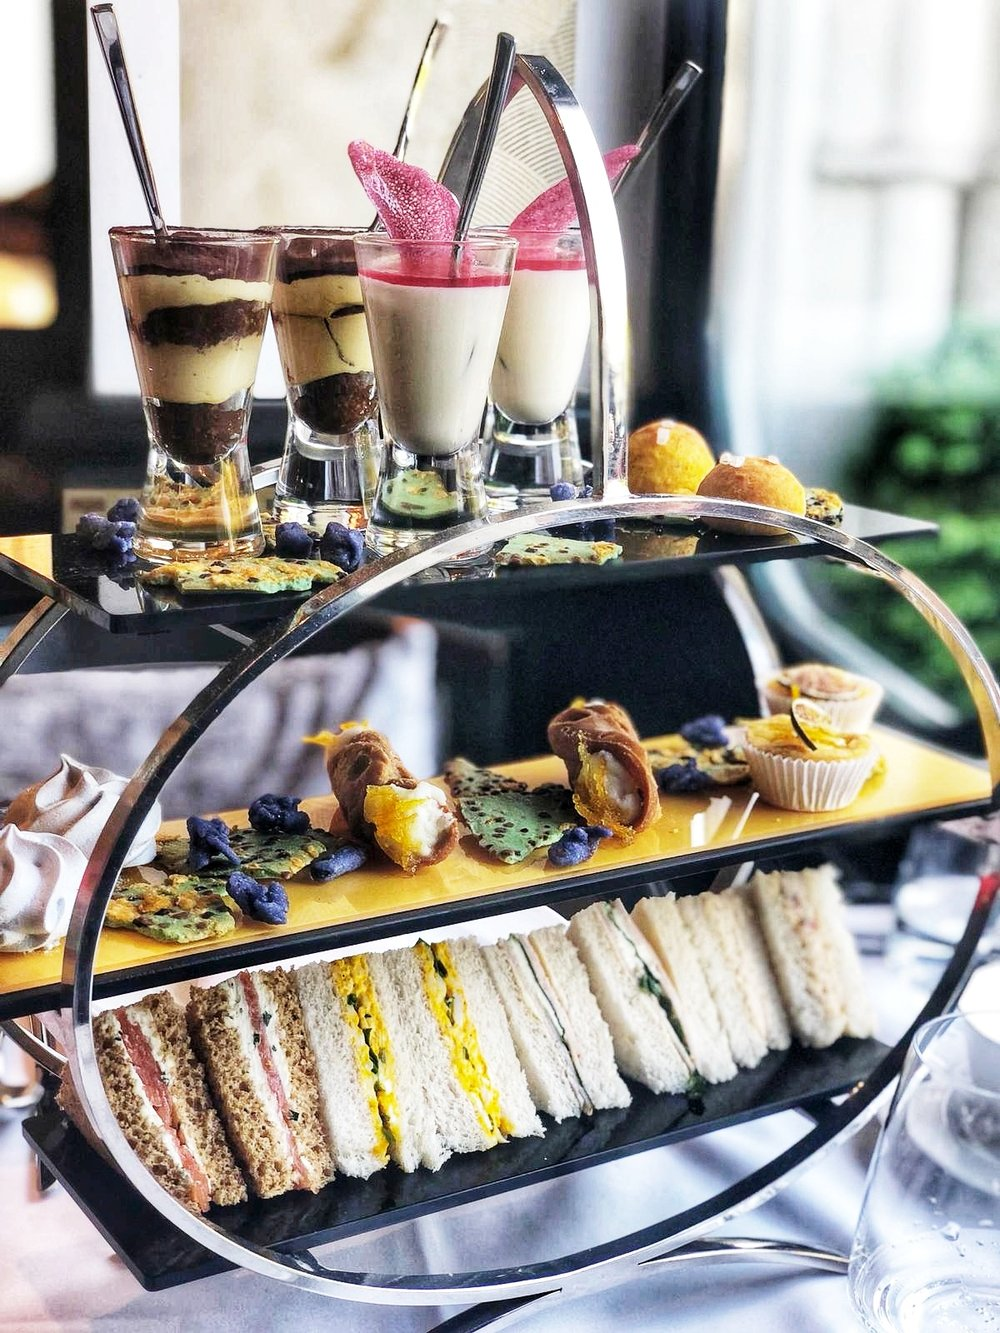 ACQUA DI PARMA AFTERNOON TEA AT BAGLIONI HOTEL REVIEW LONDON